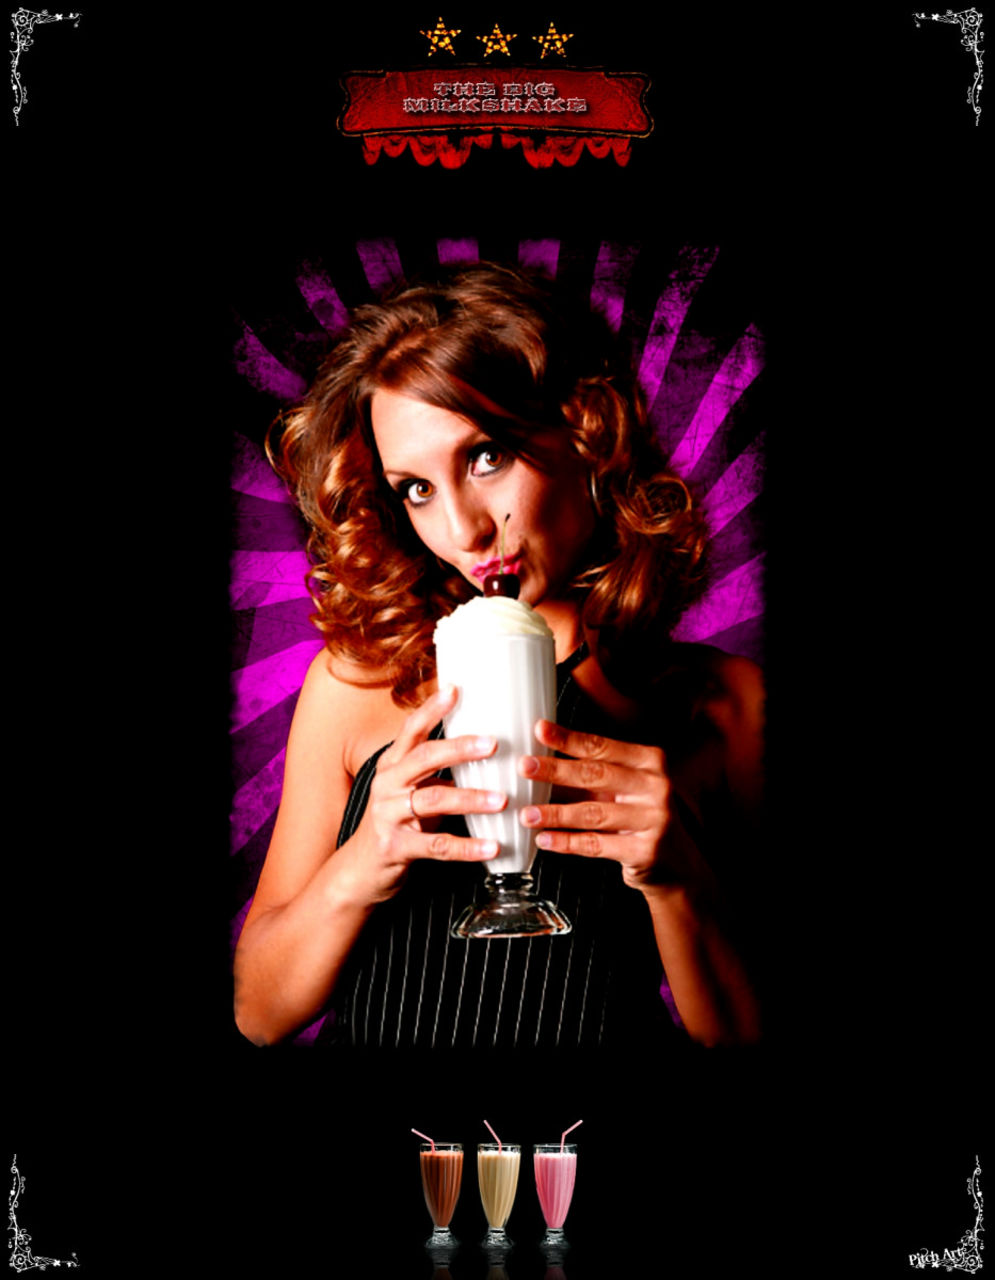 Studio Pitch Art The Milkshake For The Adults